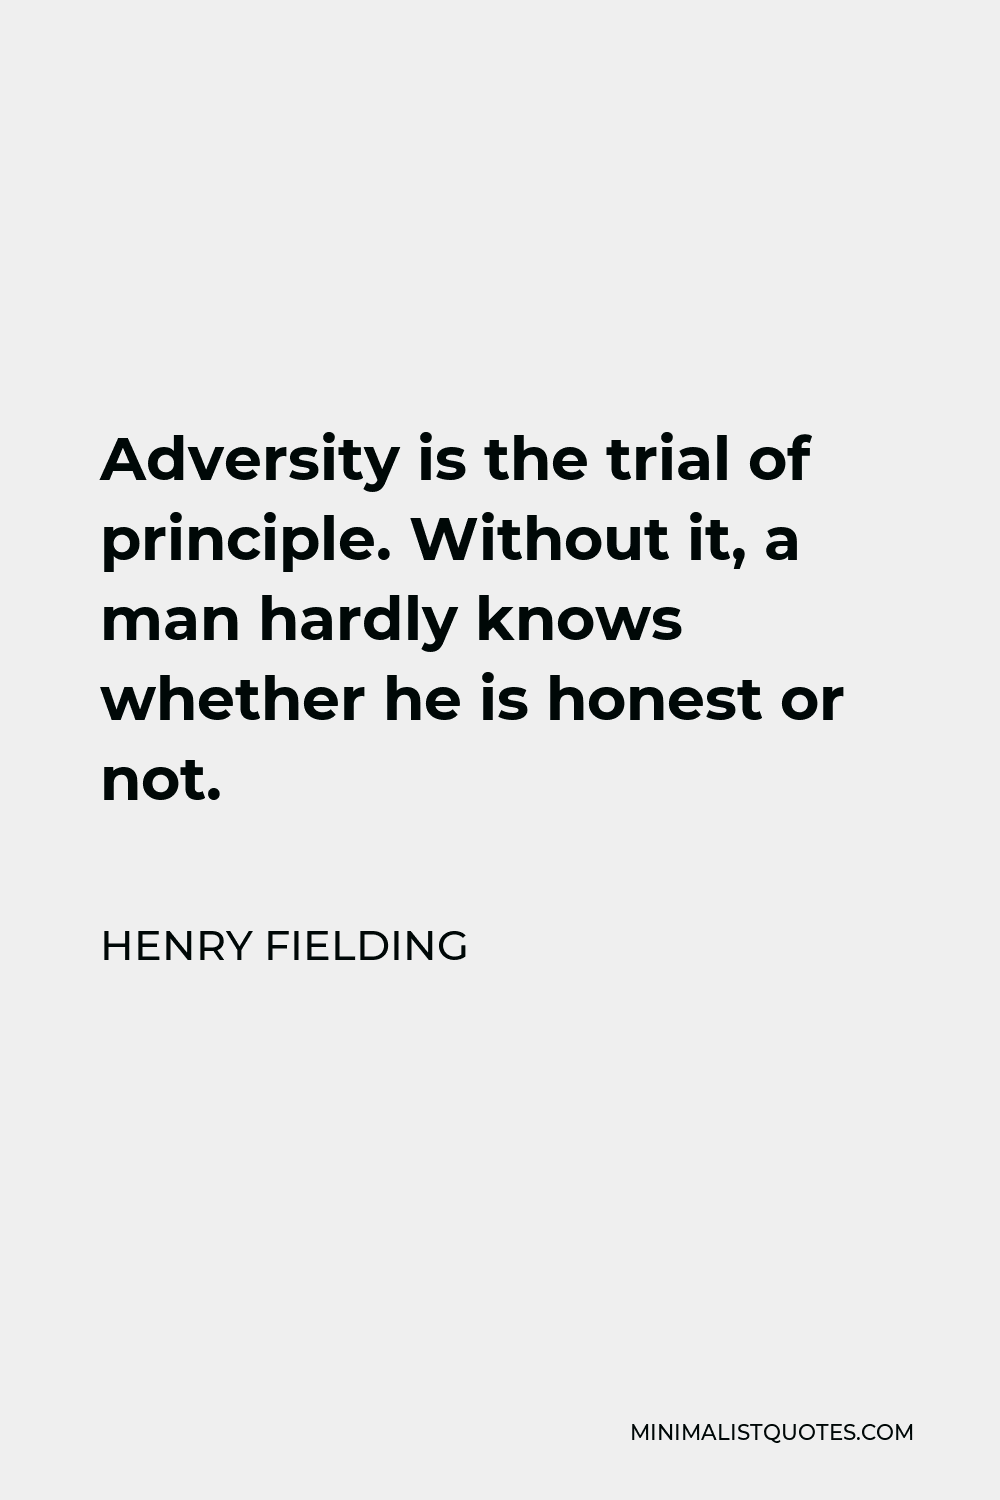 Henry Fielding Quote - Adversity is the trial of principle. Without it, a man hardly knows whether he is honest or not.